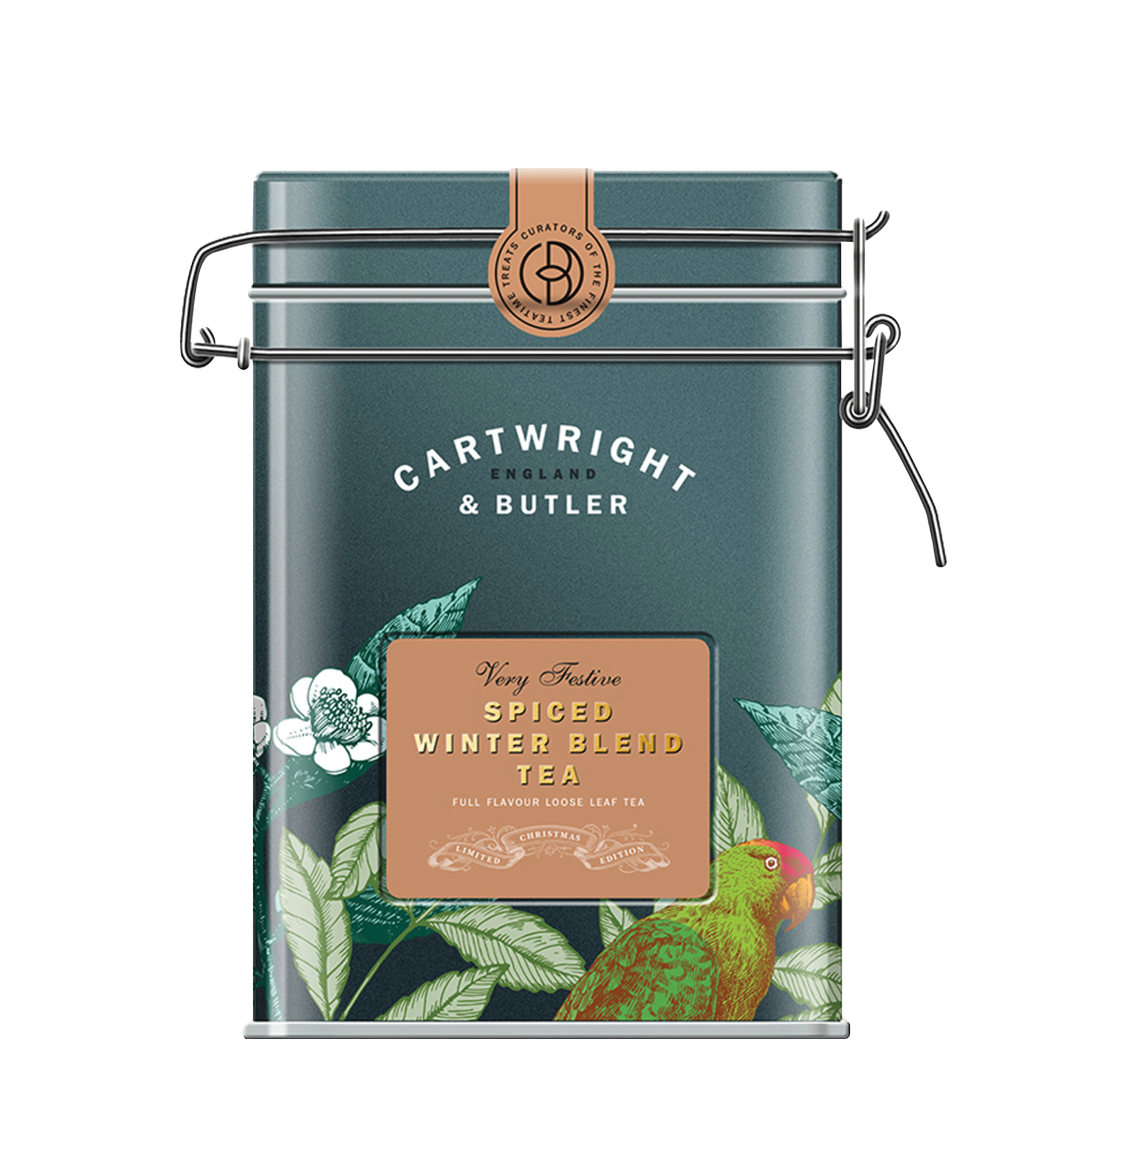 Cartwright and Butler Spiced Winter Black Blend Tea 100g